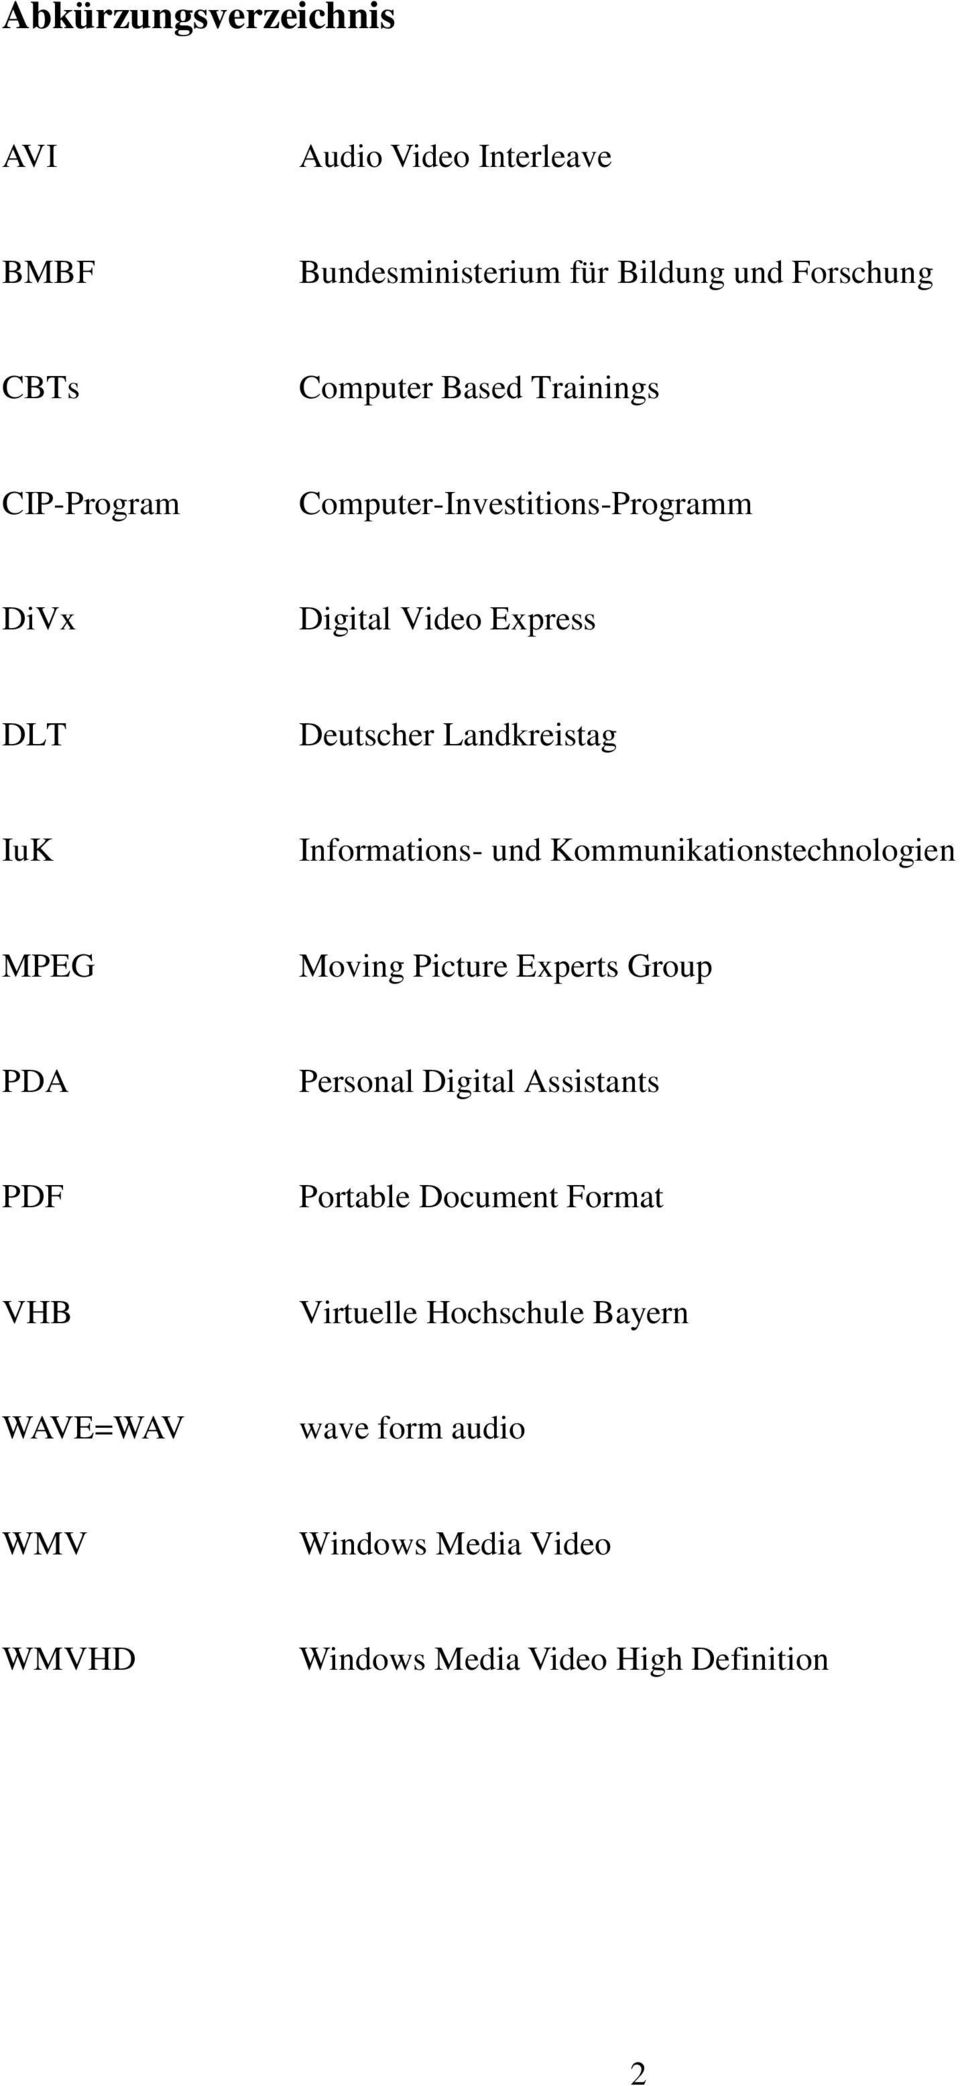 Informations- und Kommunikationstechnologien MPEG Moving Picture Experts Group PDA Personal Digital Assistants PDF Portable